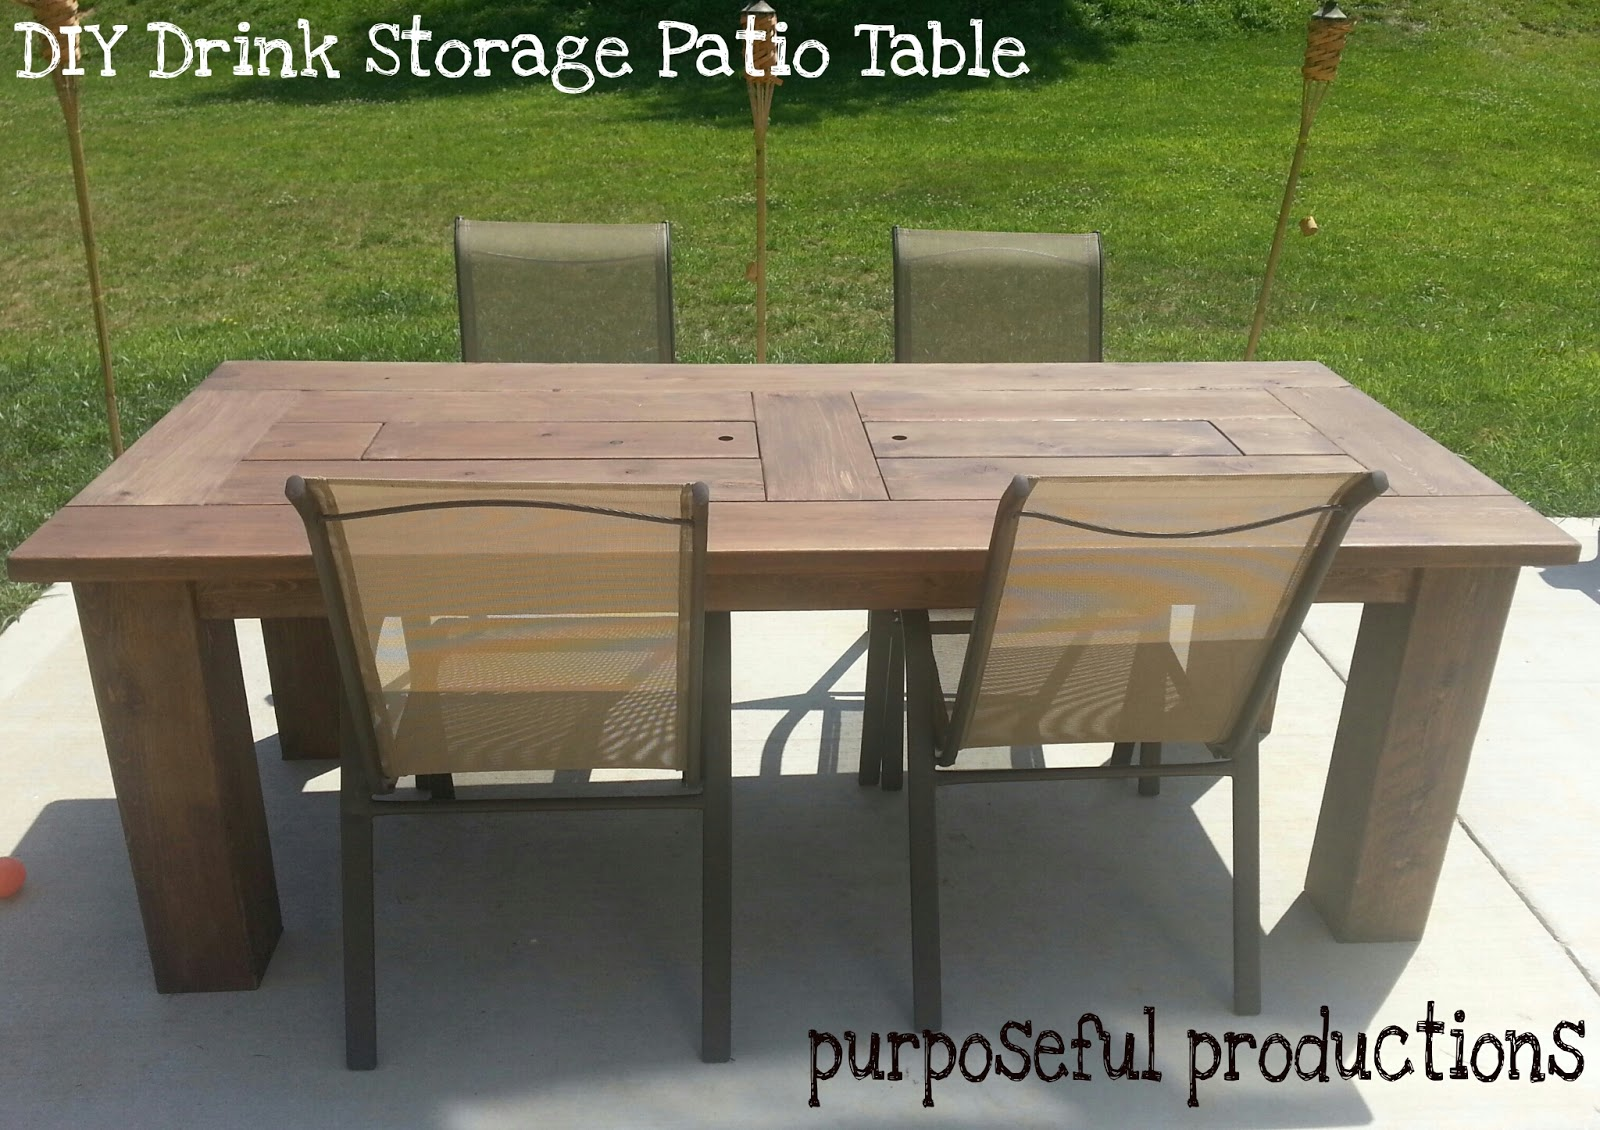 Purposeful productions diy wood patio table with drink